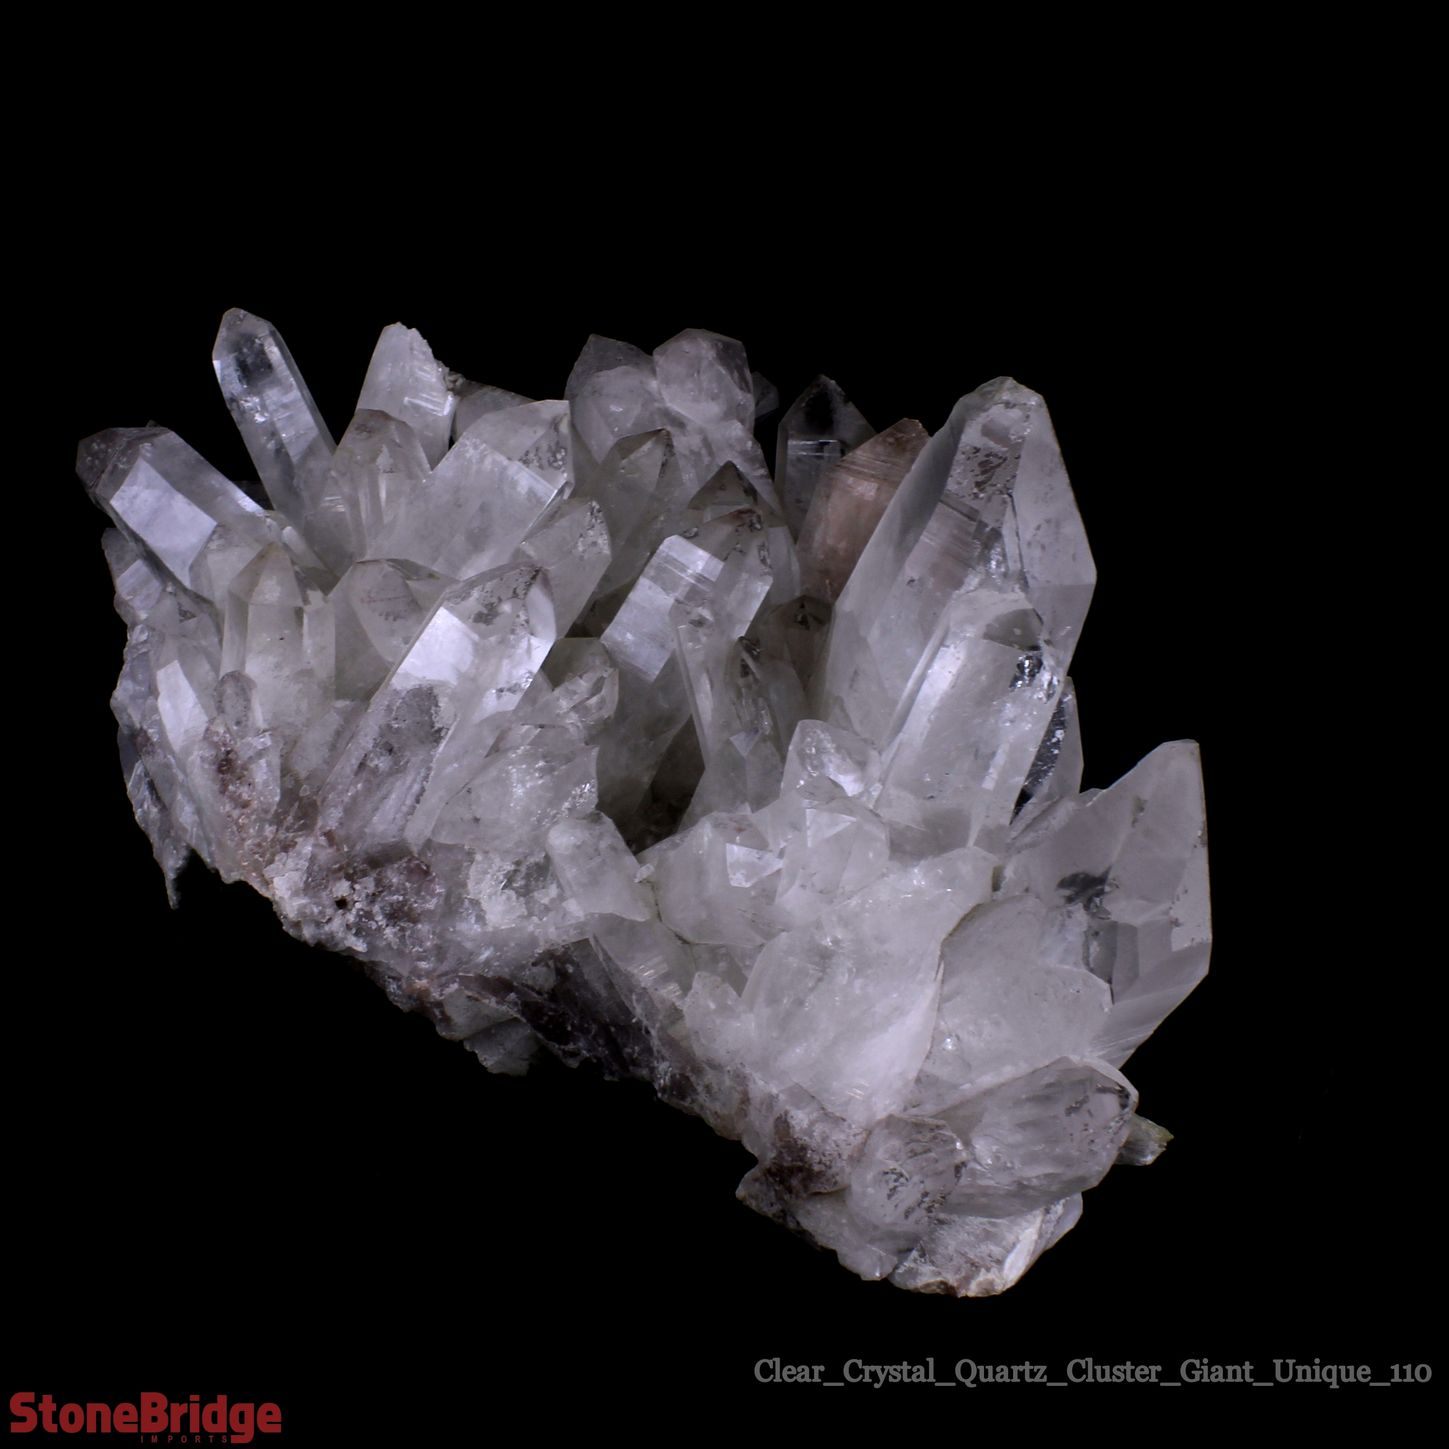 CLCRU110_Clear_Crystal_Quartz_Cluster_Giant_Unique_11018.jpg